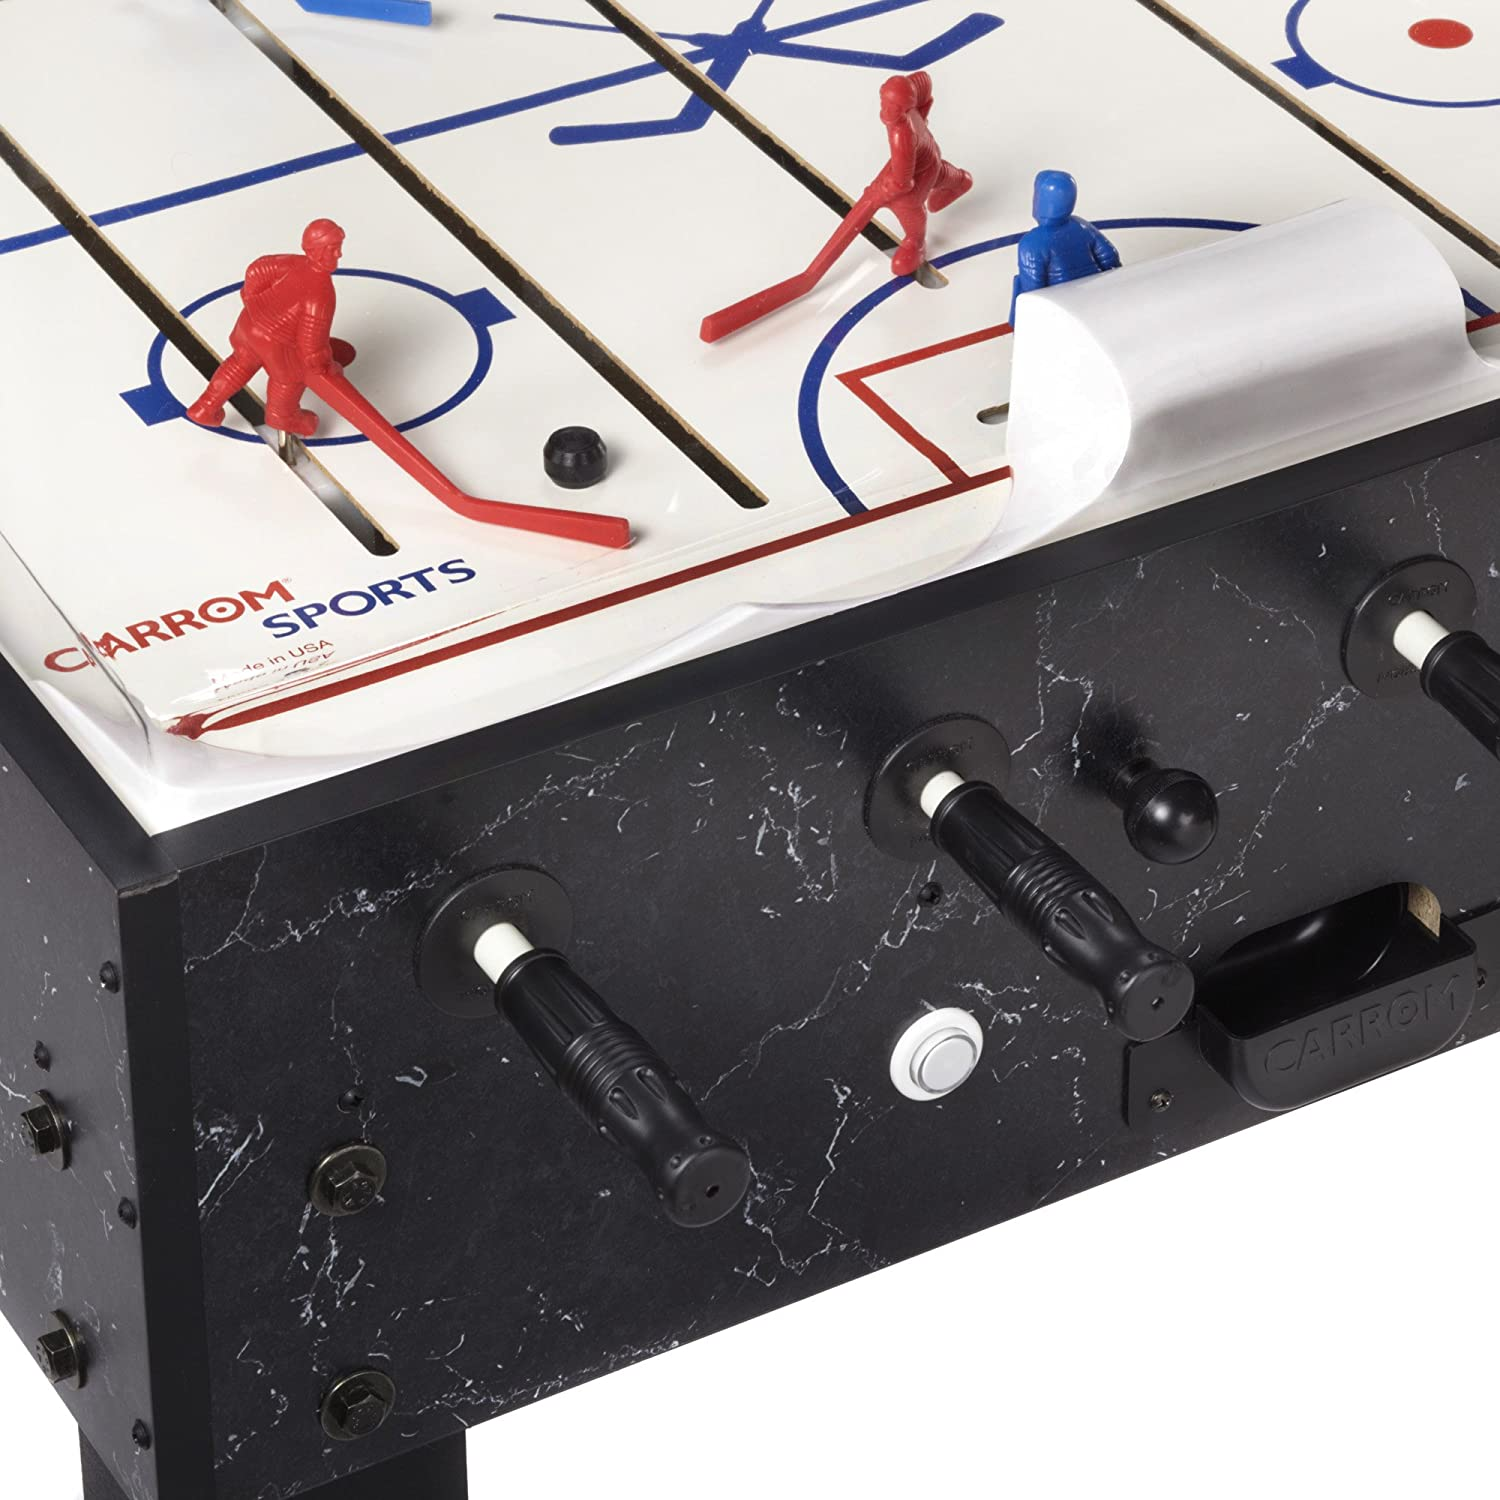 81NBvBm0aWL._SL1500_ amazon com carrom 415 super stick hockey table dome hockey carrom bubble hockey wiring diagram at bakdesigns.co